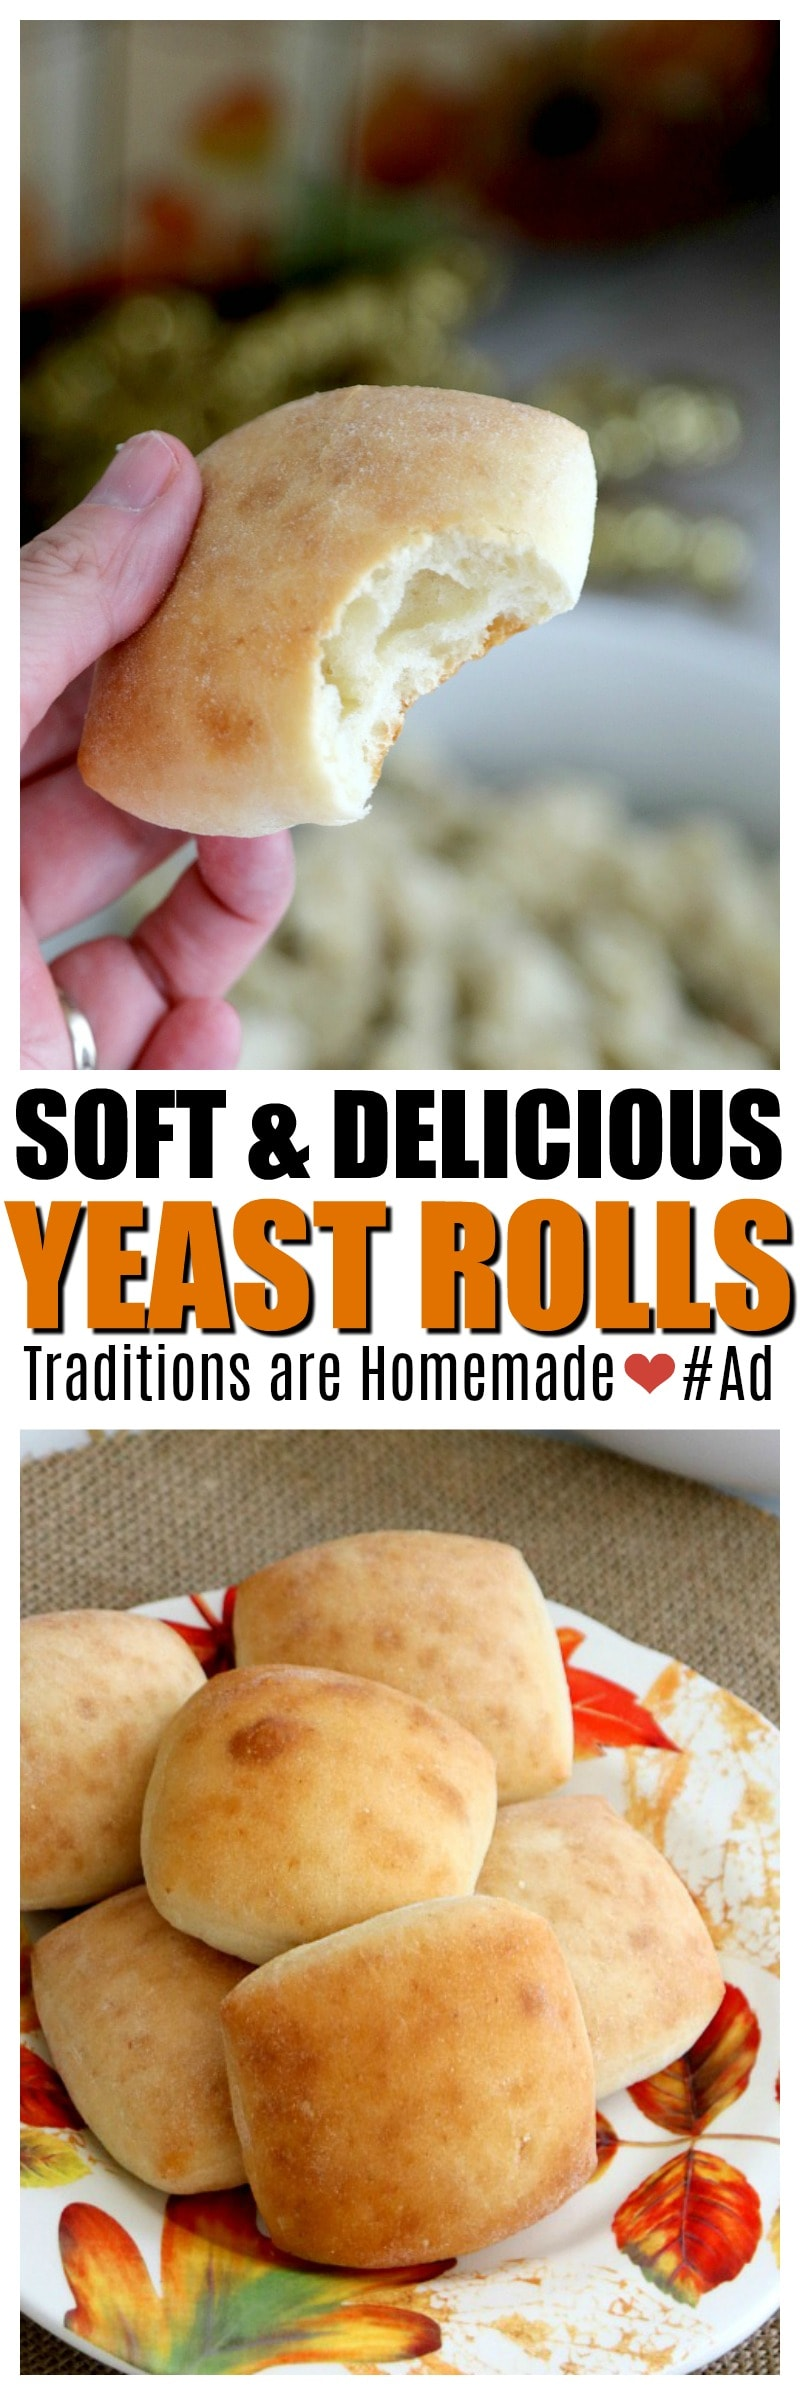 Soft and Delicious Yeast Rolls from ister Schubert's Dinner Yeast Rolls! You wont regret them, cutting corner is NOT cutting perfect flavor